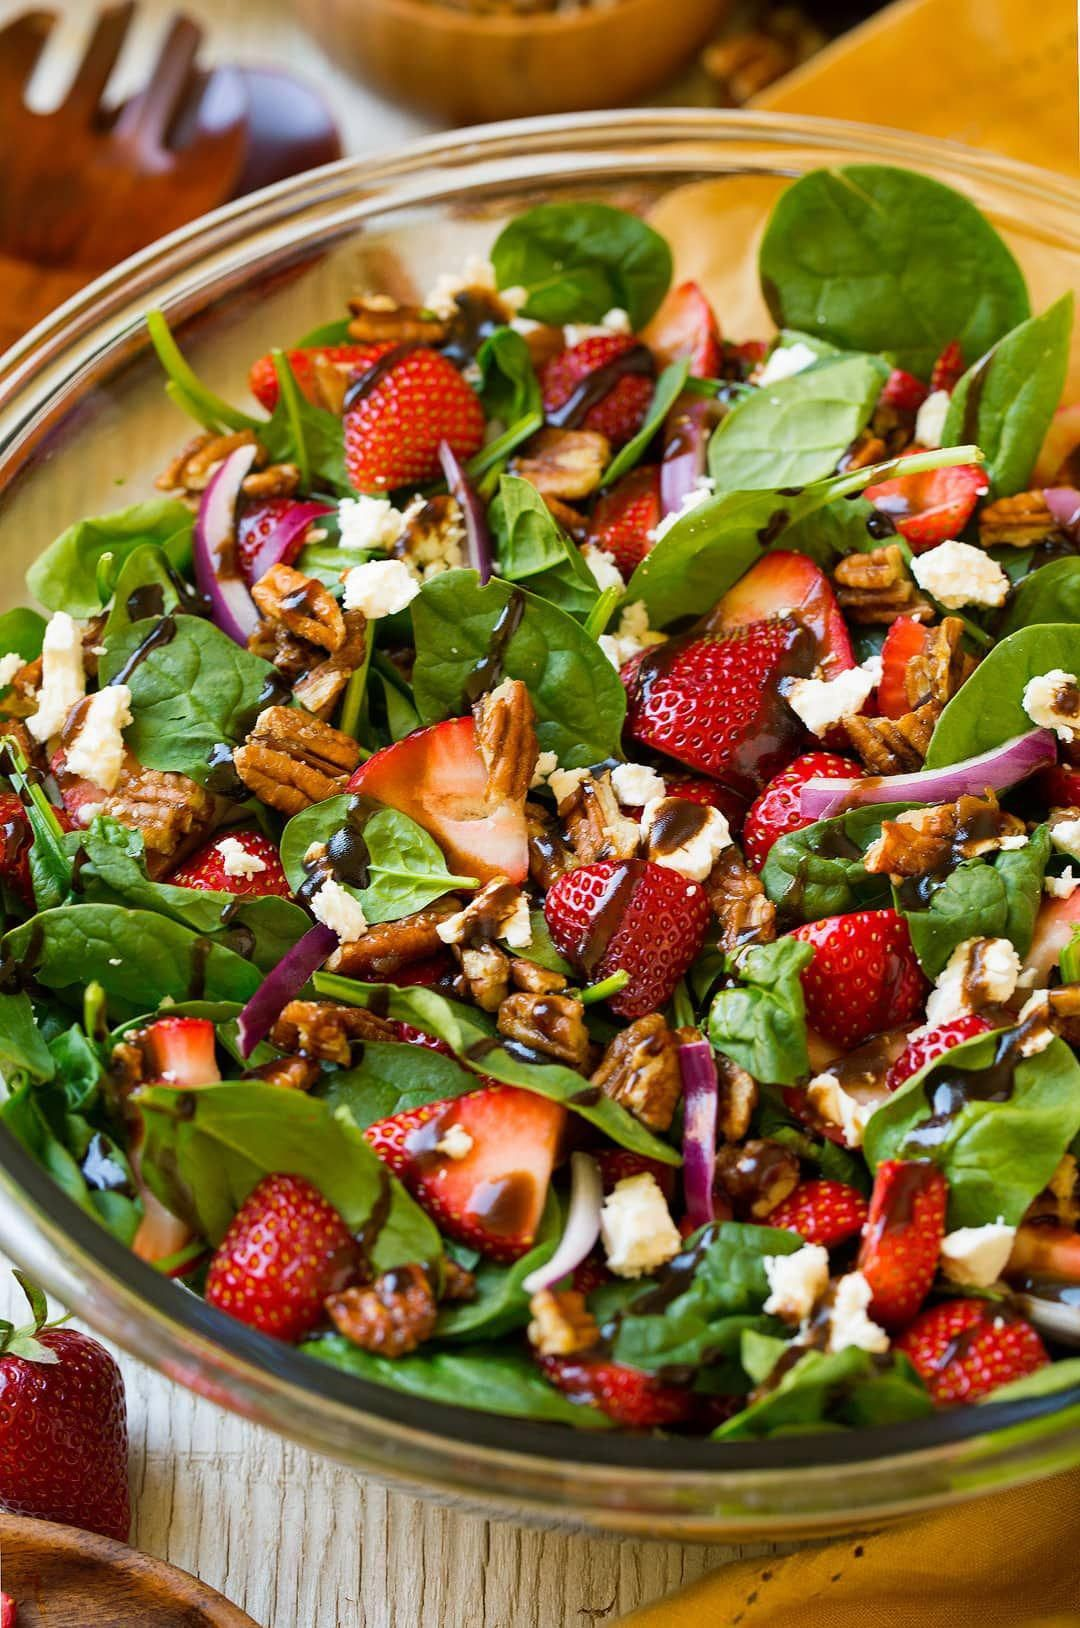 Strawberry Spinach Salad. An easy and delicious spinach salad made with strawberries, feta, candied pecans and a balsamic vinaigrette. | Strawberry Salad | Summer Salads | Easy Salads |